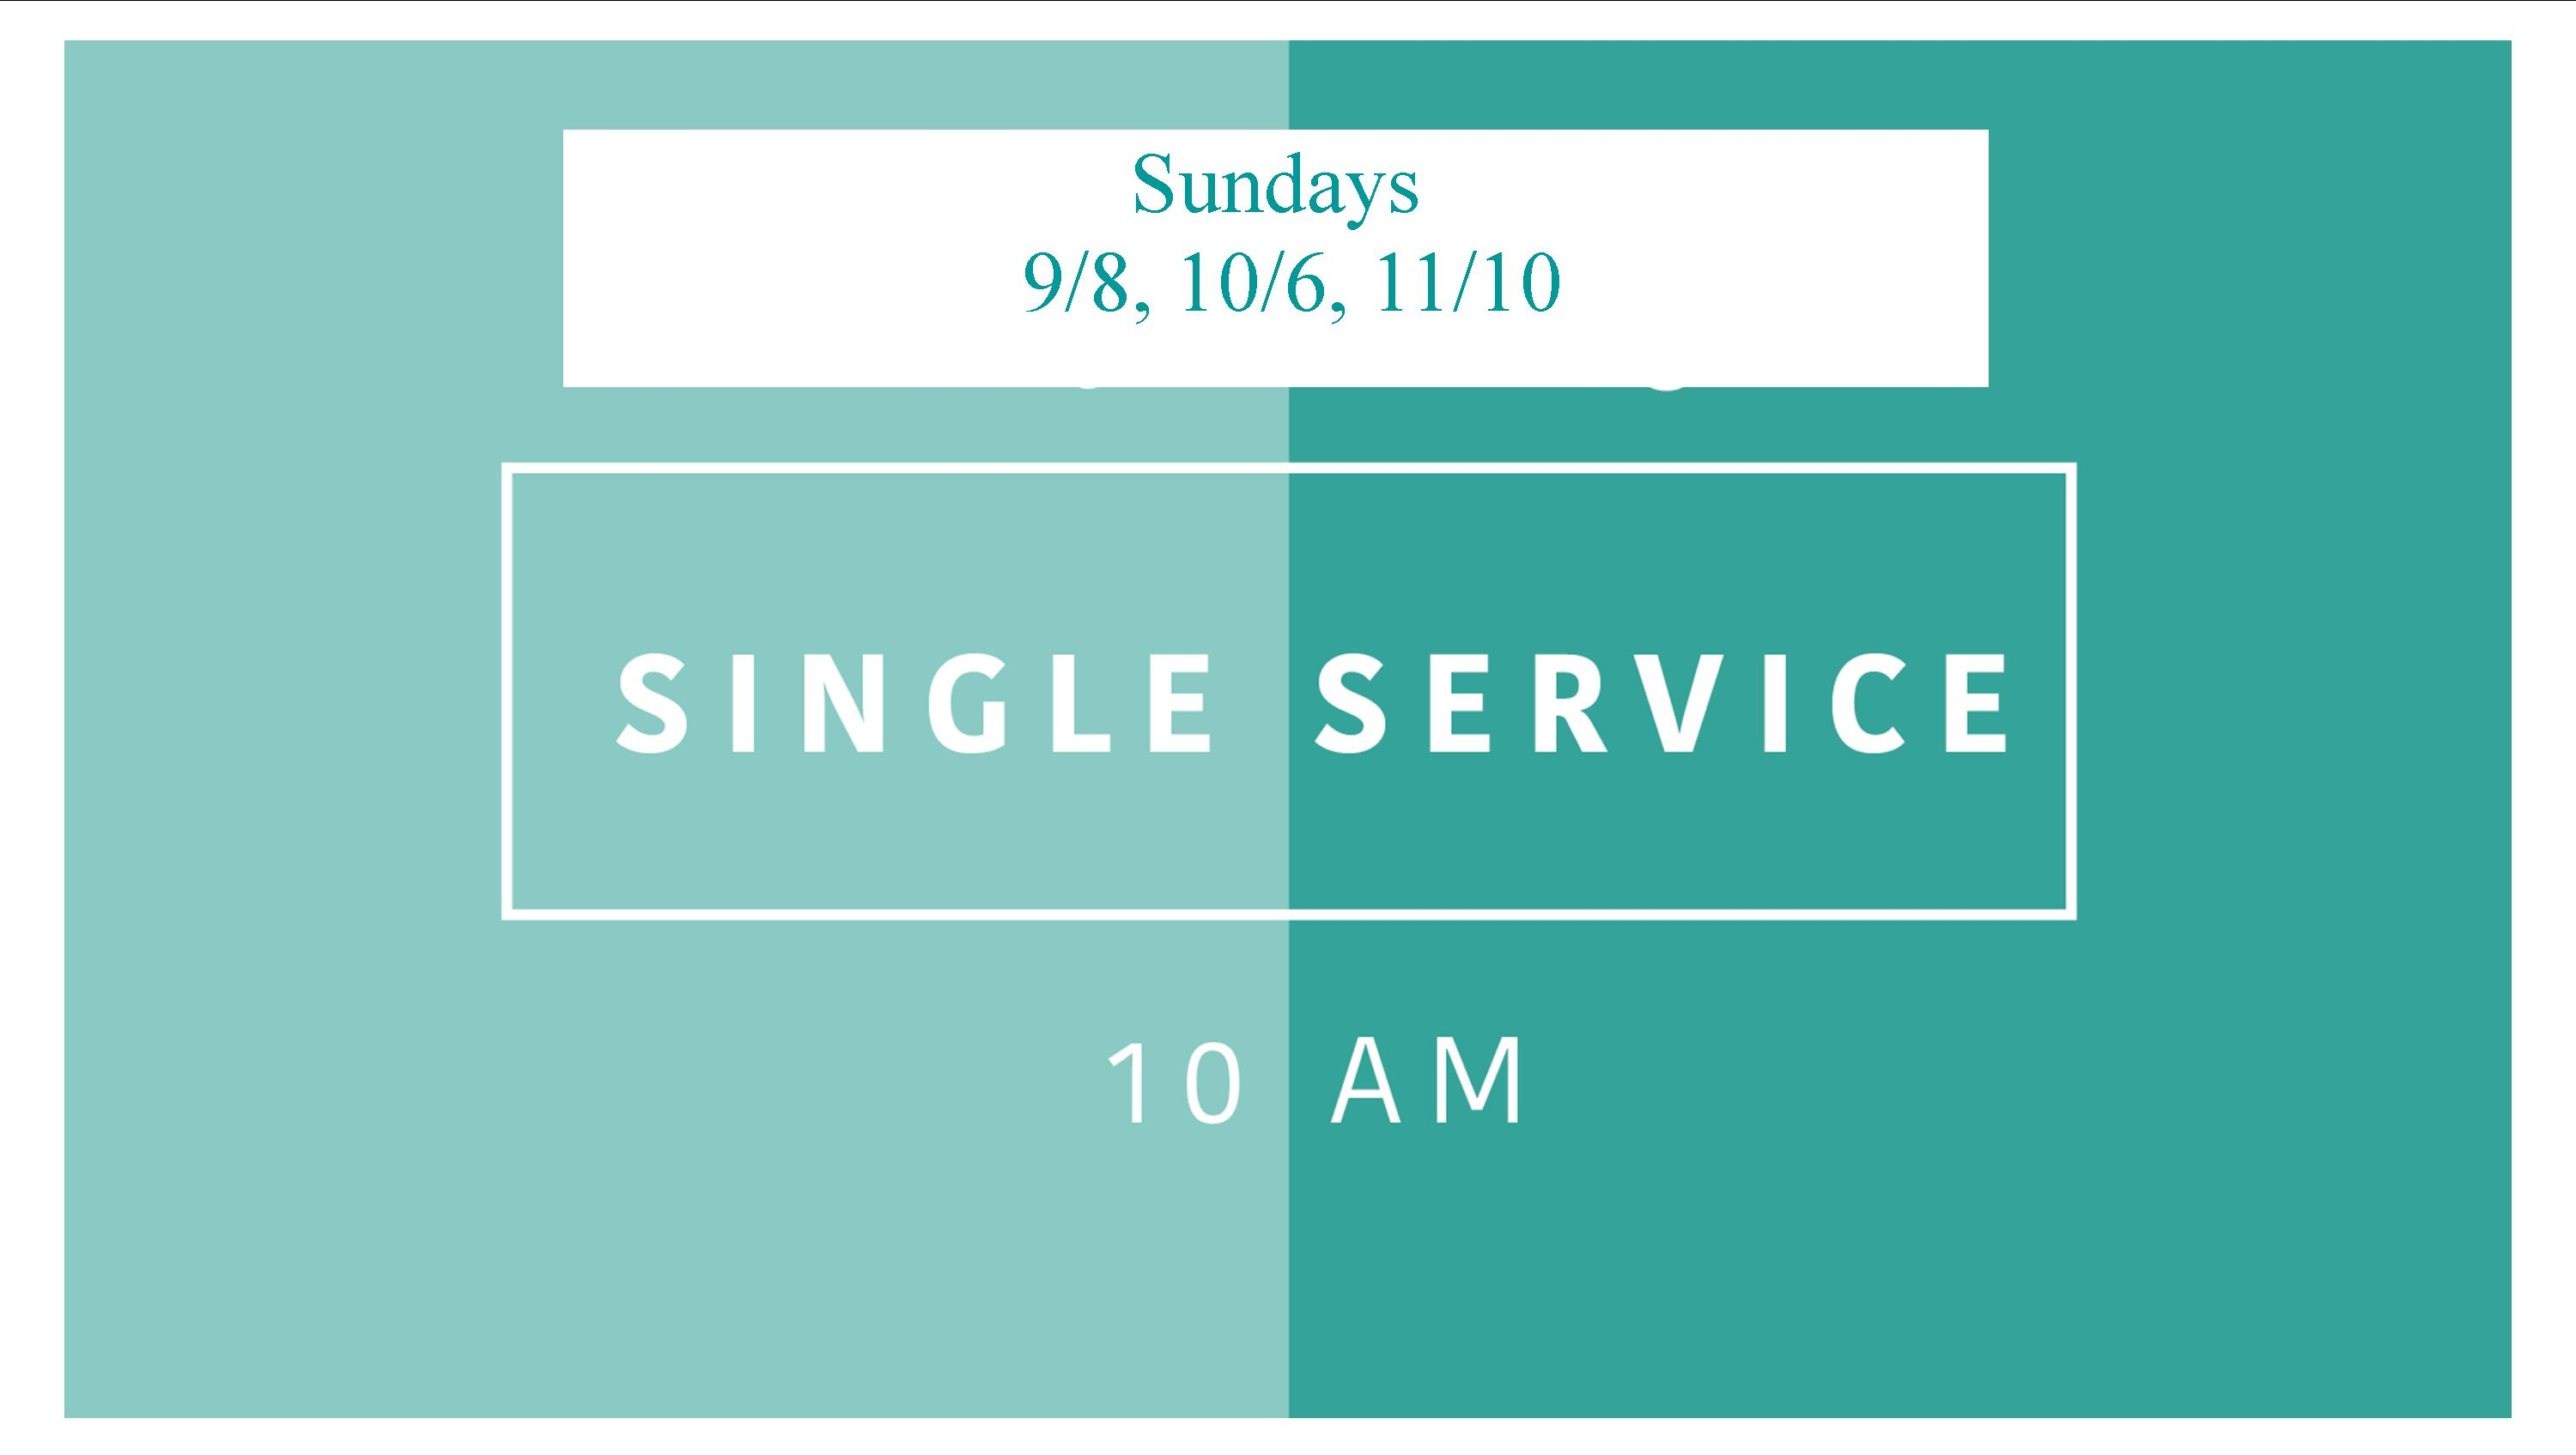 Single Service Sunday